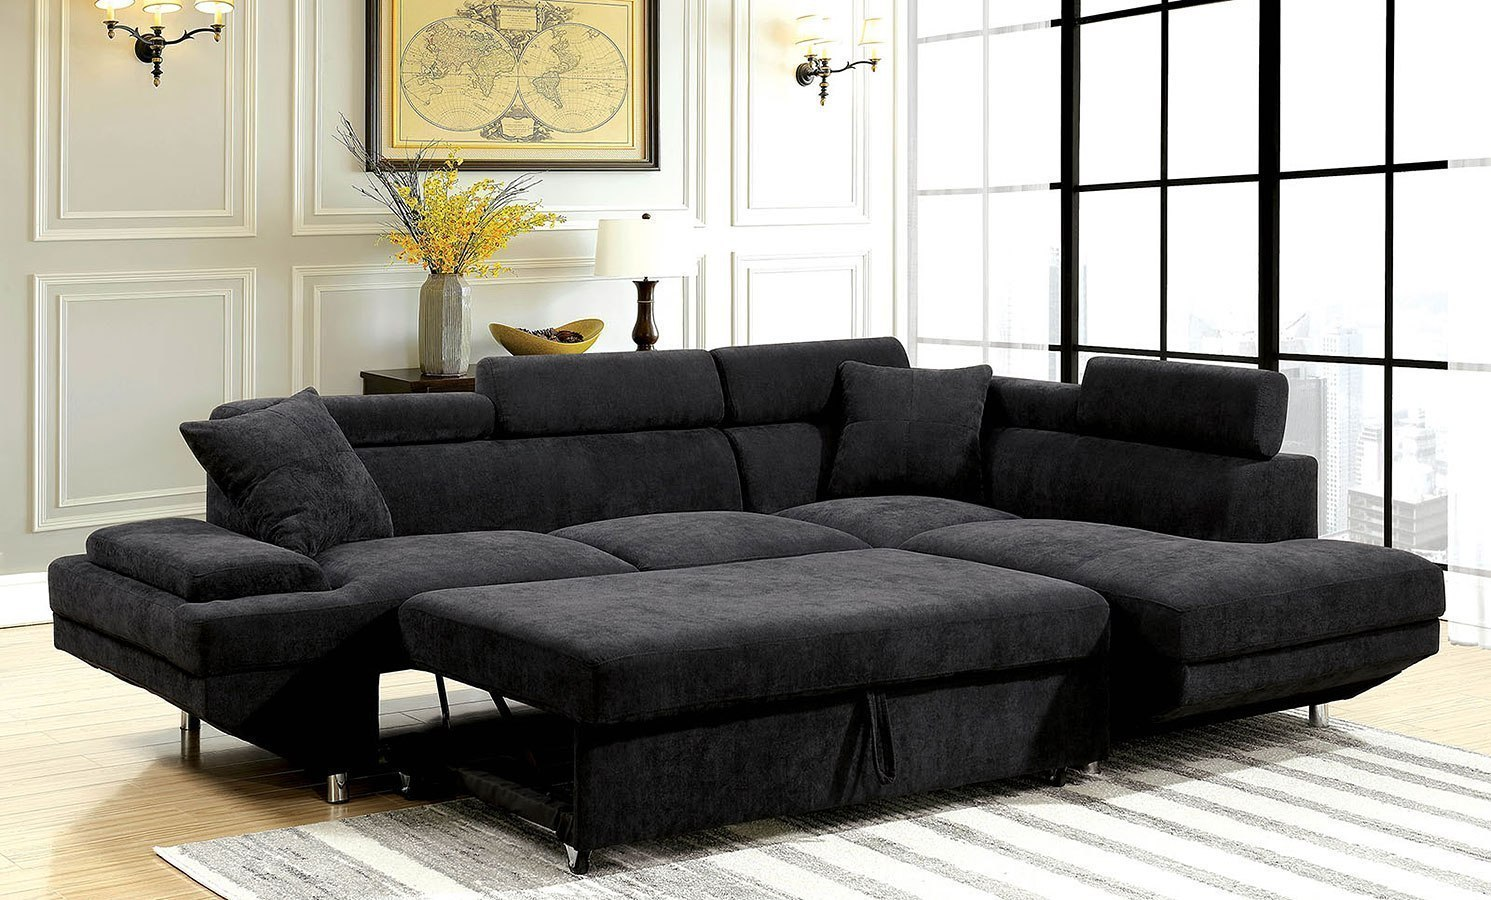 Foreman Right Chaise Sectional W Pull Out Bed Black By